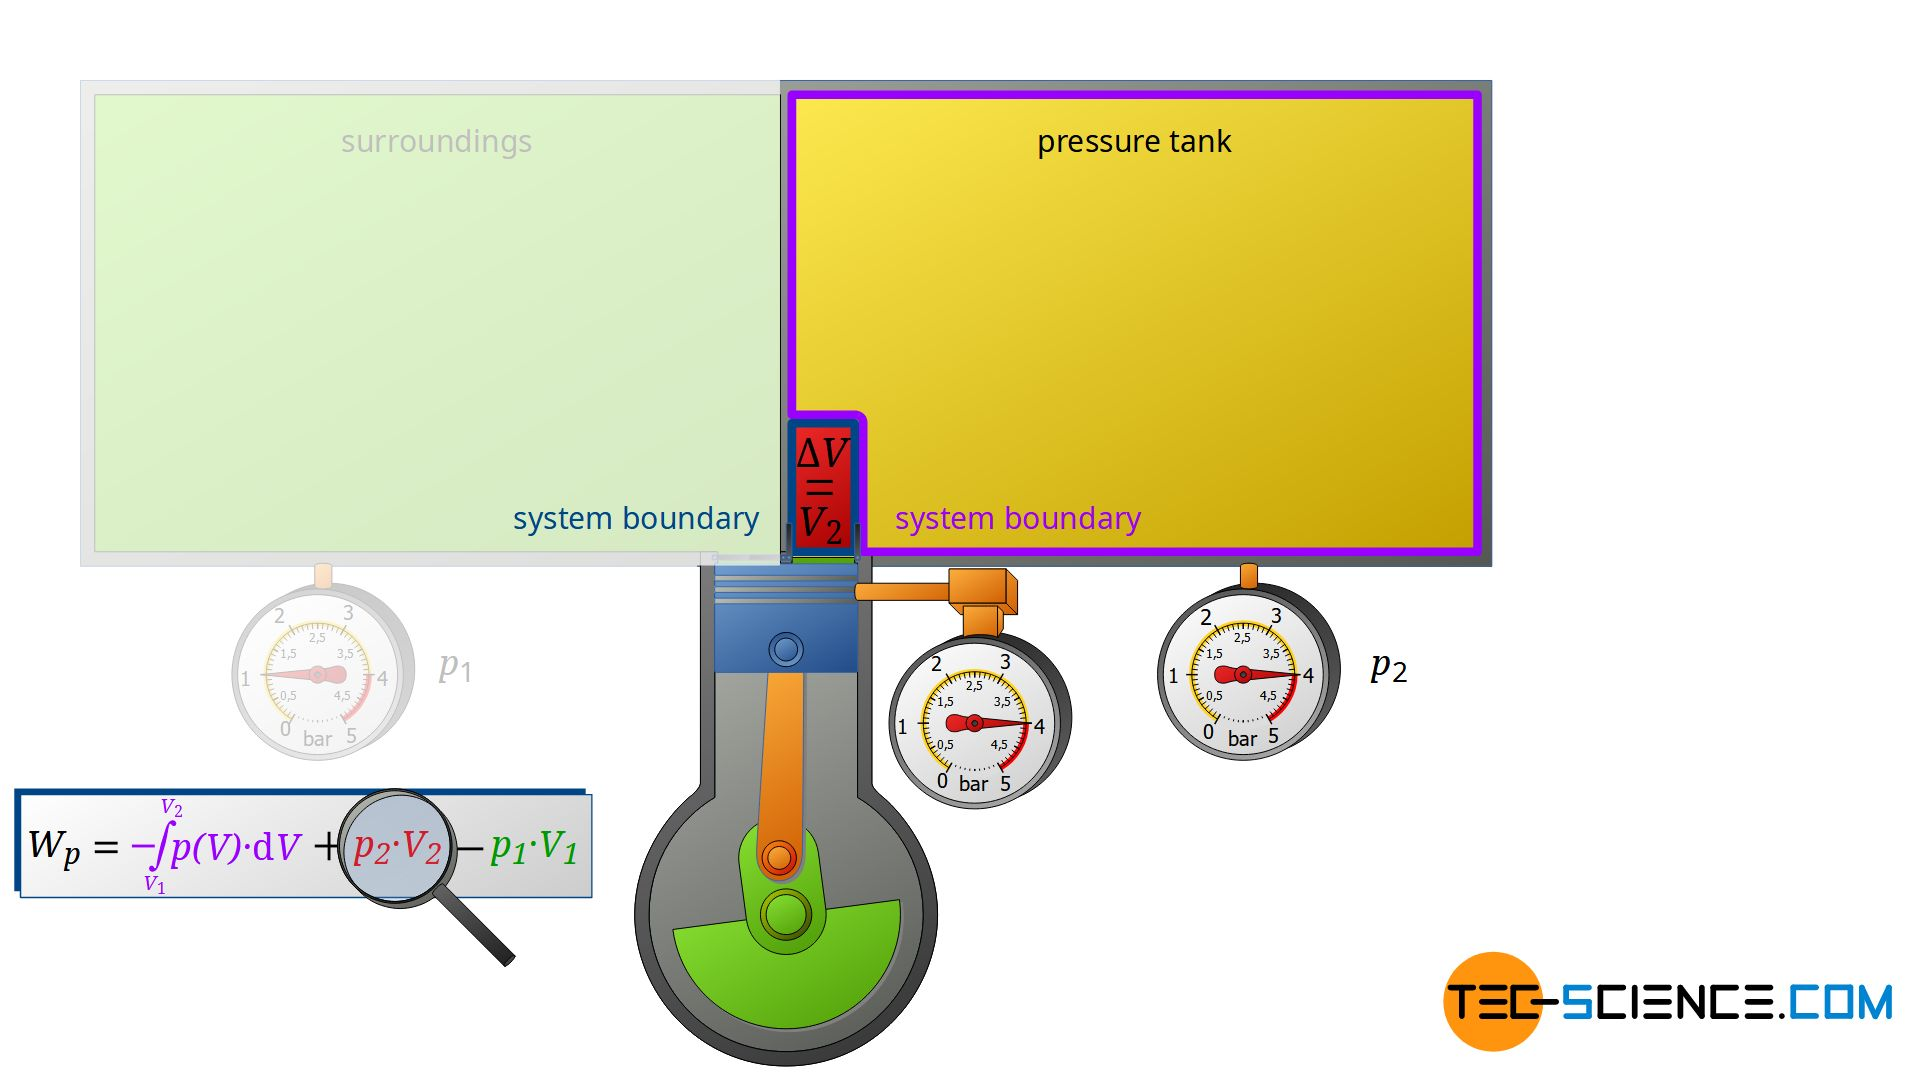 Pressure-volume work done on the gas inside the pressure tank